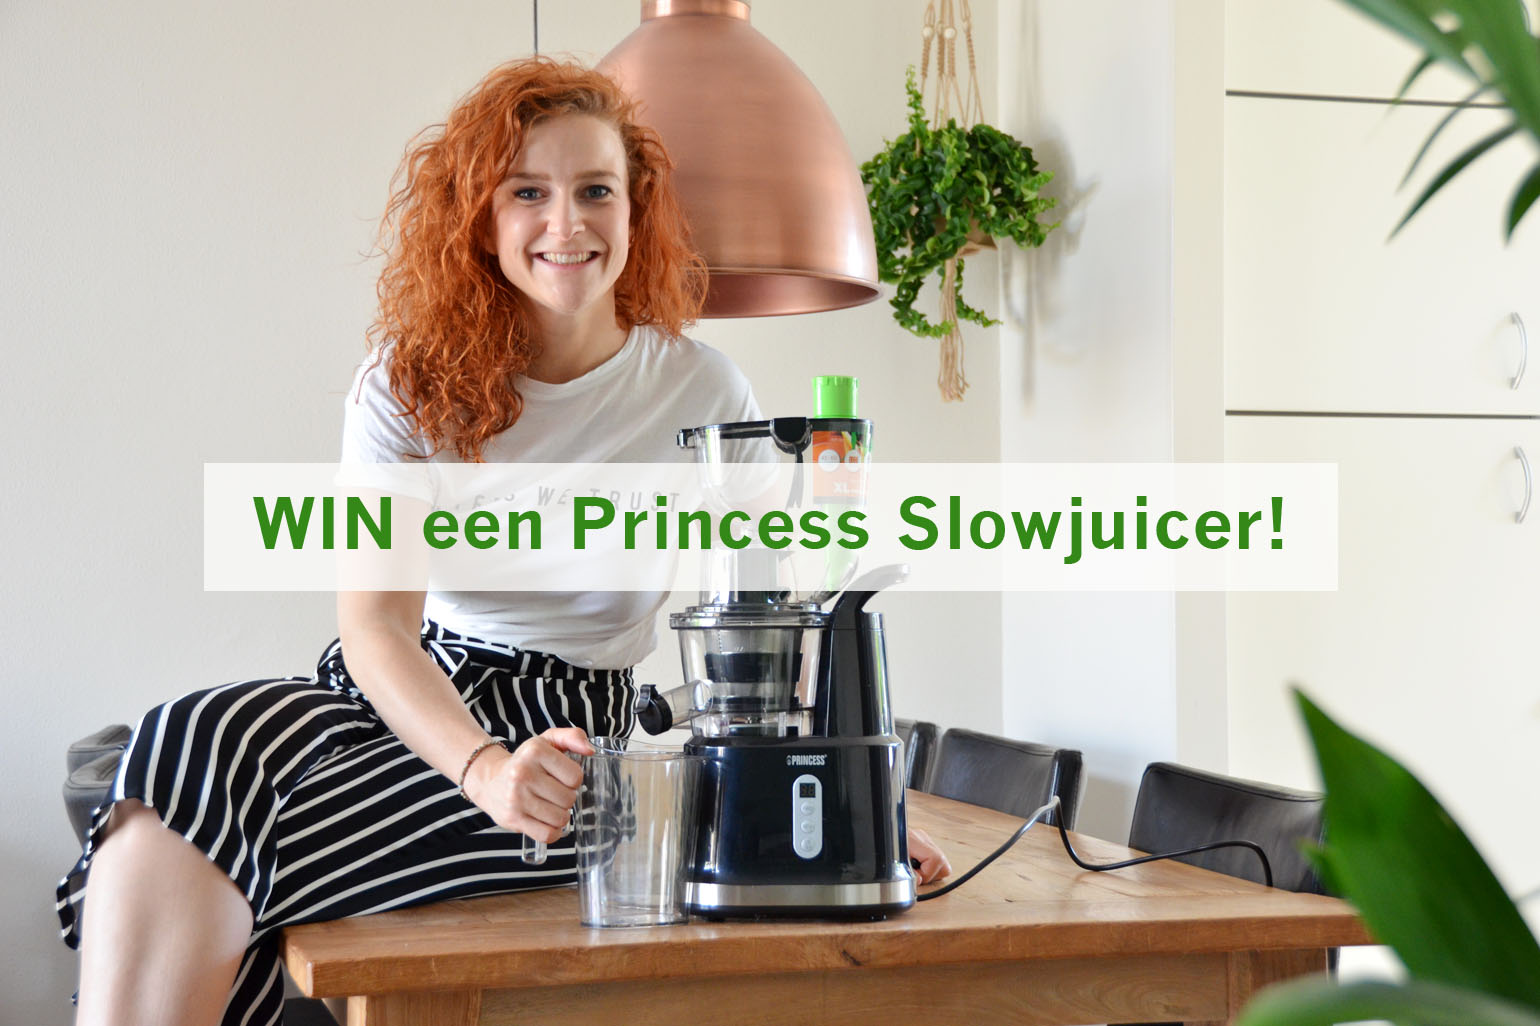 Princess Slow Juicer Reviews : Princess Slowjuicer Review & Winactie - HealthiNut